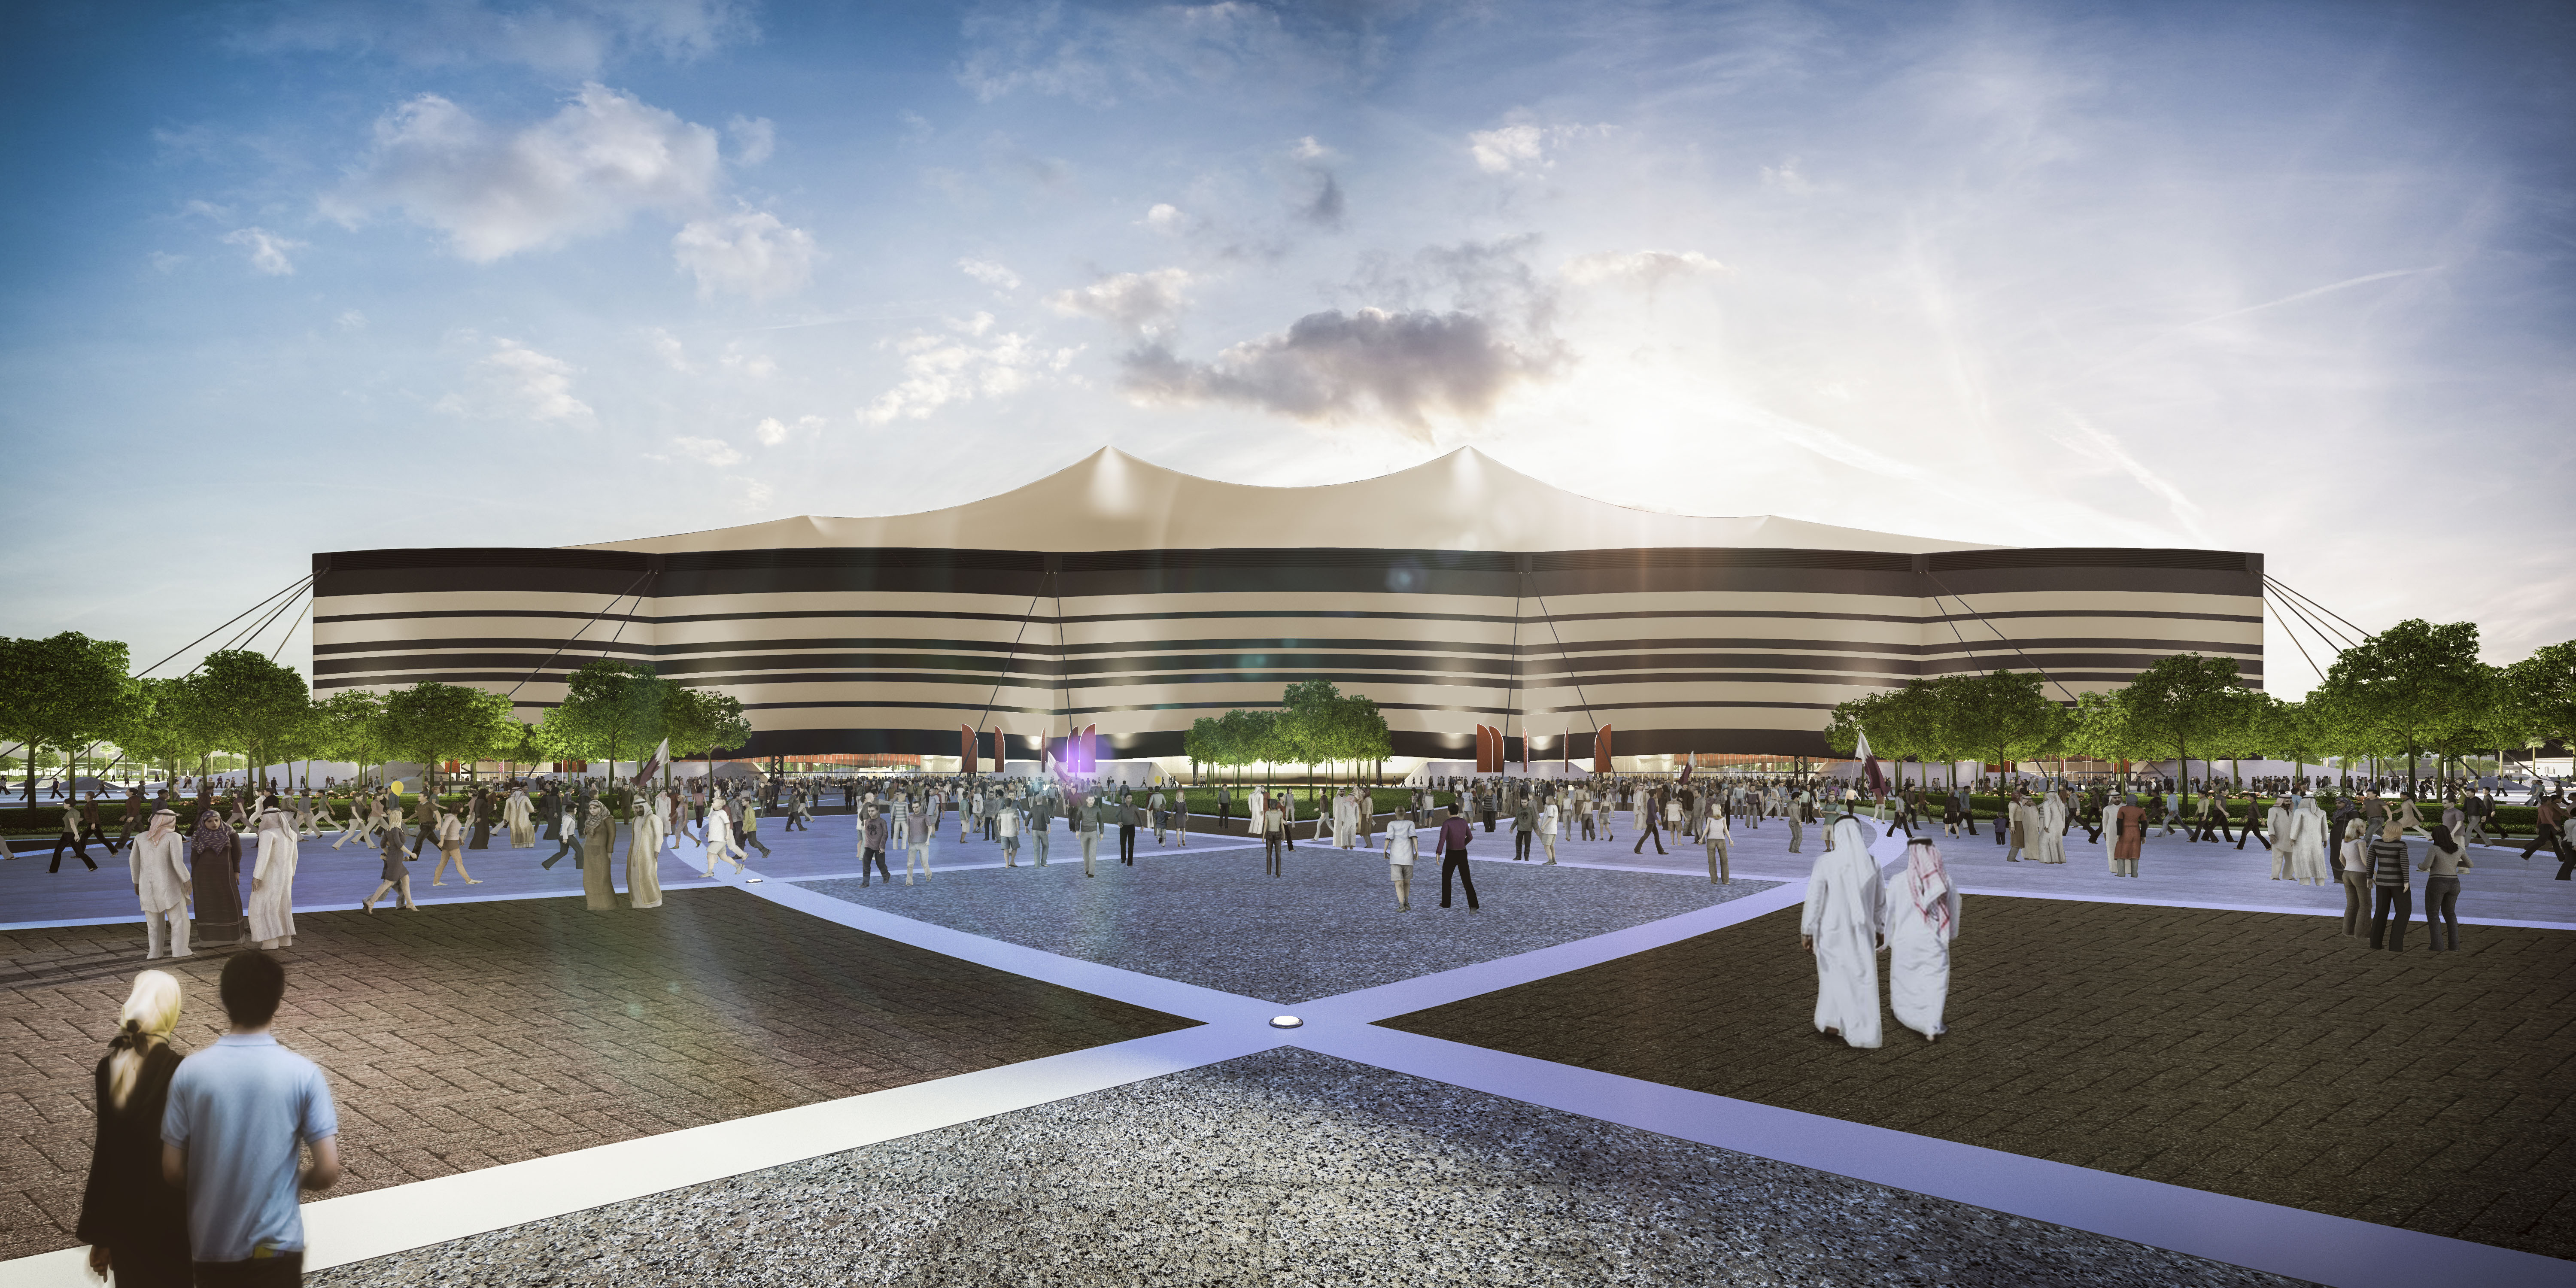 In this handout image supplied by Qatar 2022, is an artist's impression of the Al Bayt Stadium, Al Khor City, a host venue for the 2022 FIFA World Cup Qatar.